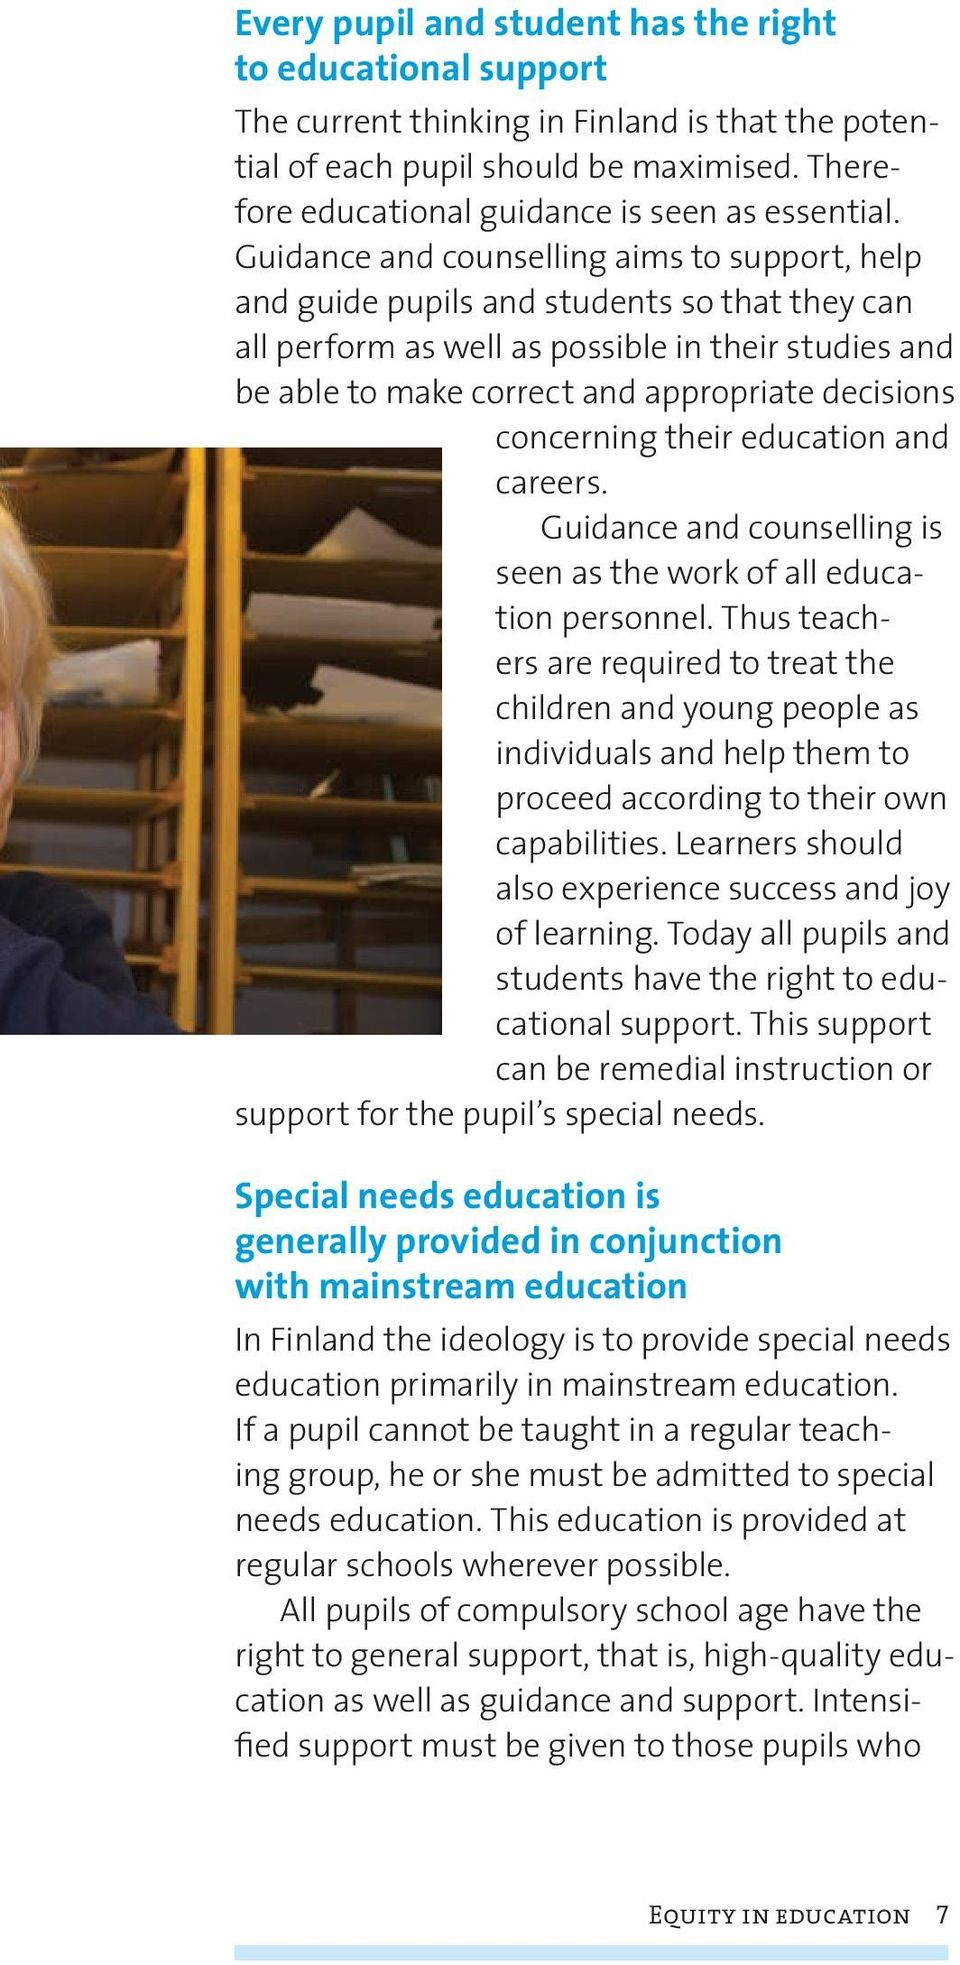 Guidance and counselling aims to support, help and guide pupils and students so that they can all perform as well as possible in their studies and be able to make correct and appropriate decisions